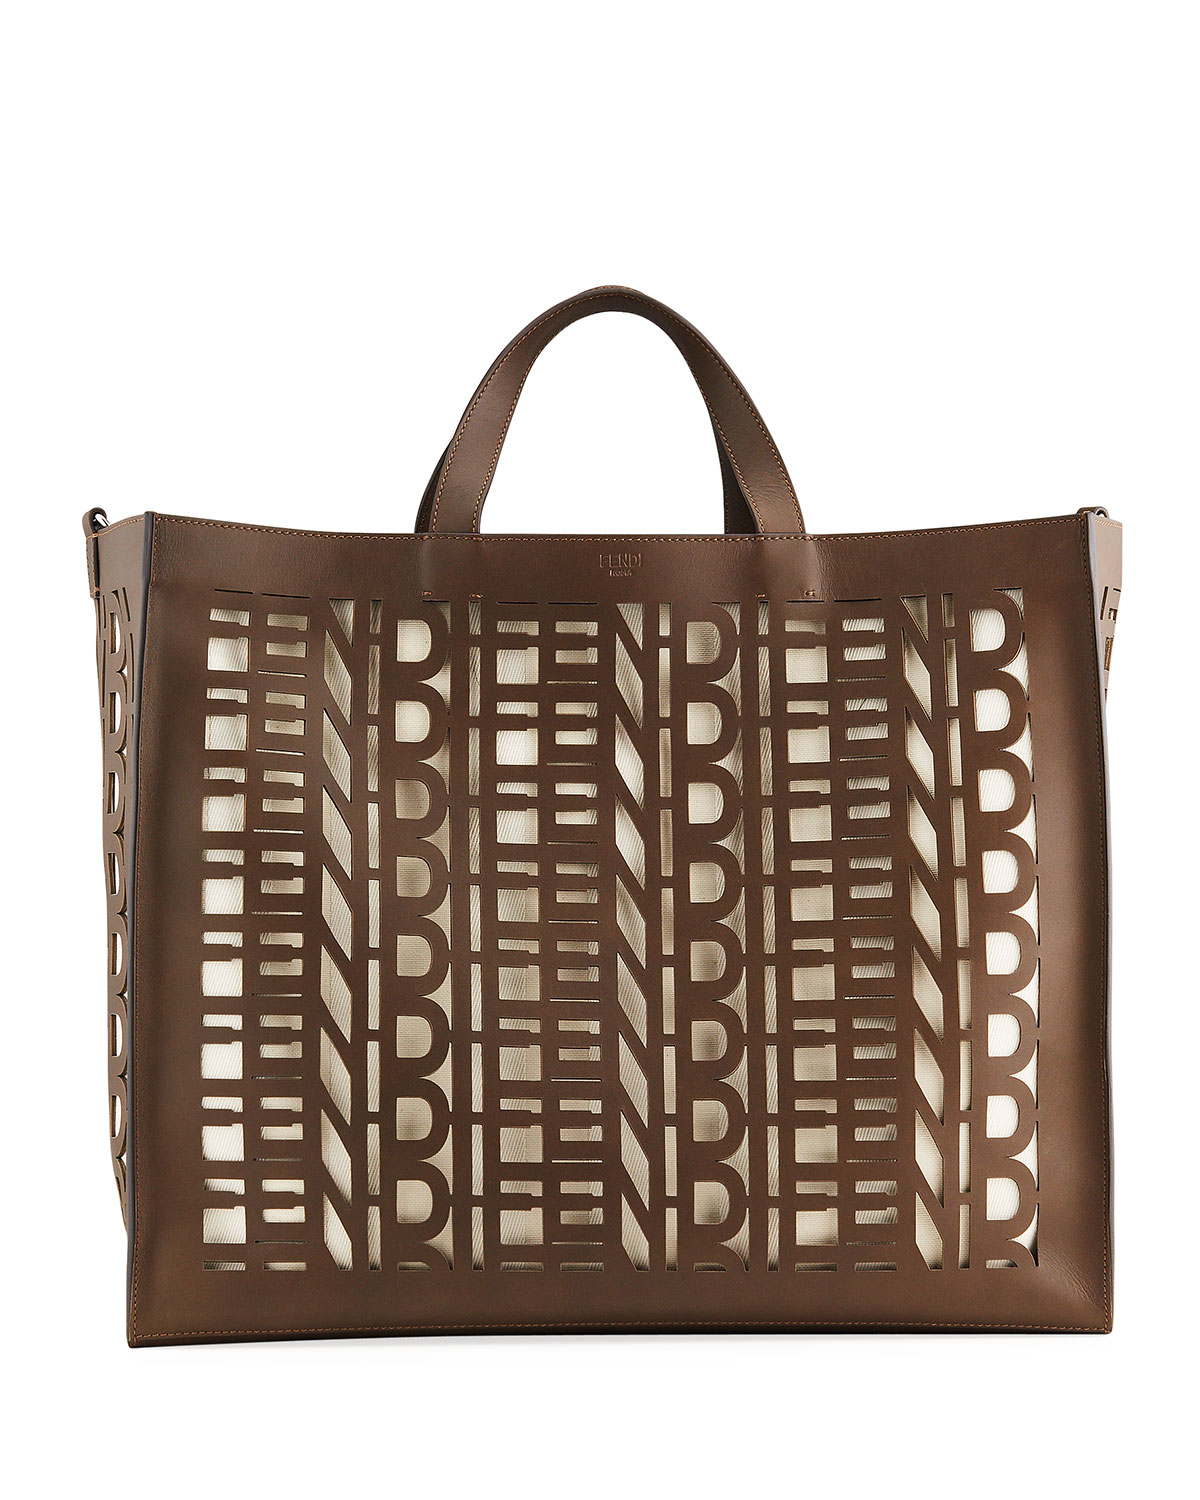 Fendi MEN'S FENDI LASER-CUT LEATHER TOTE BAG